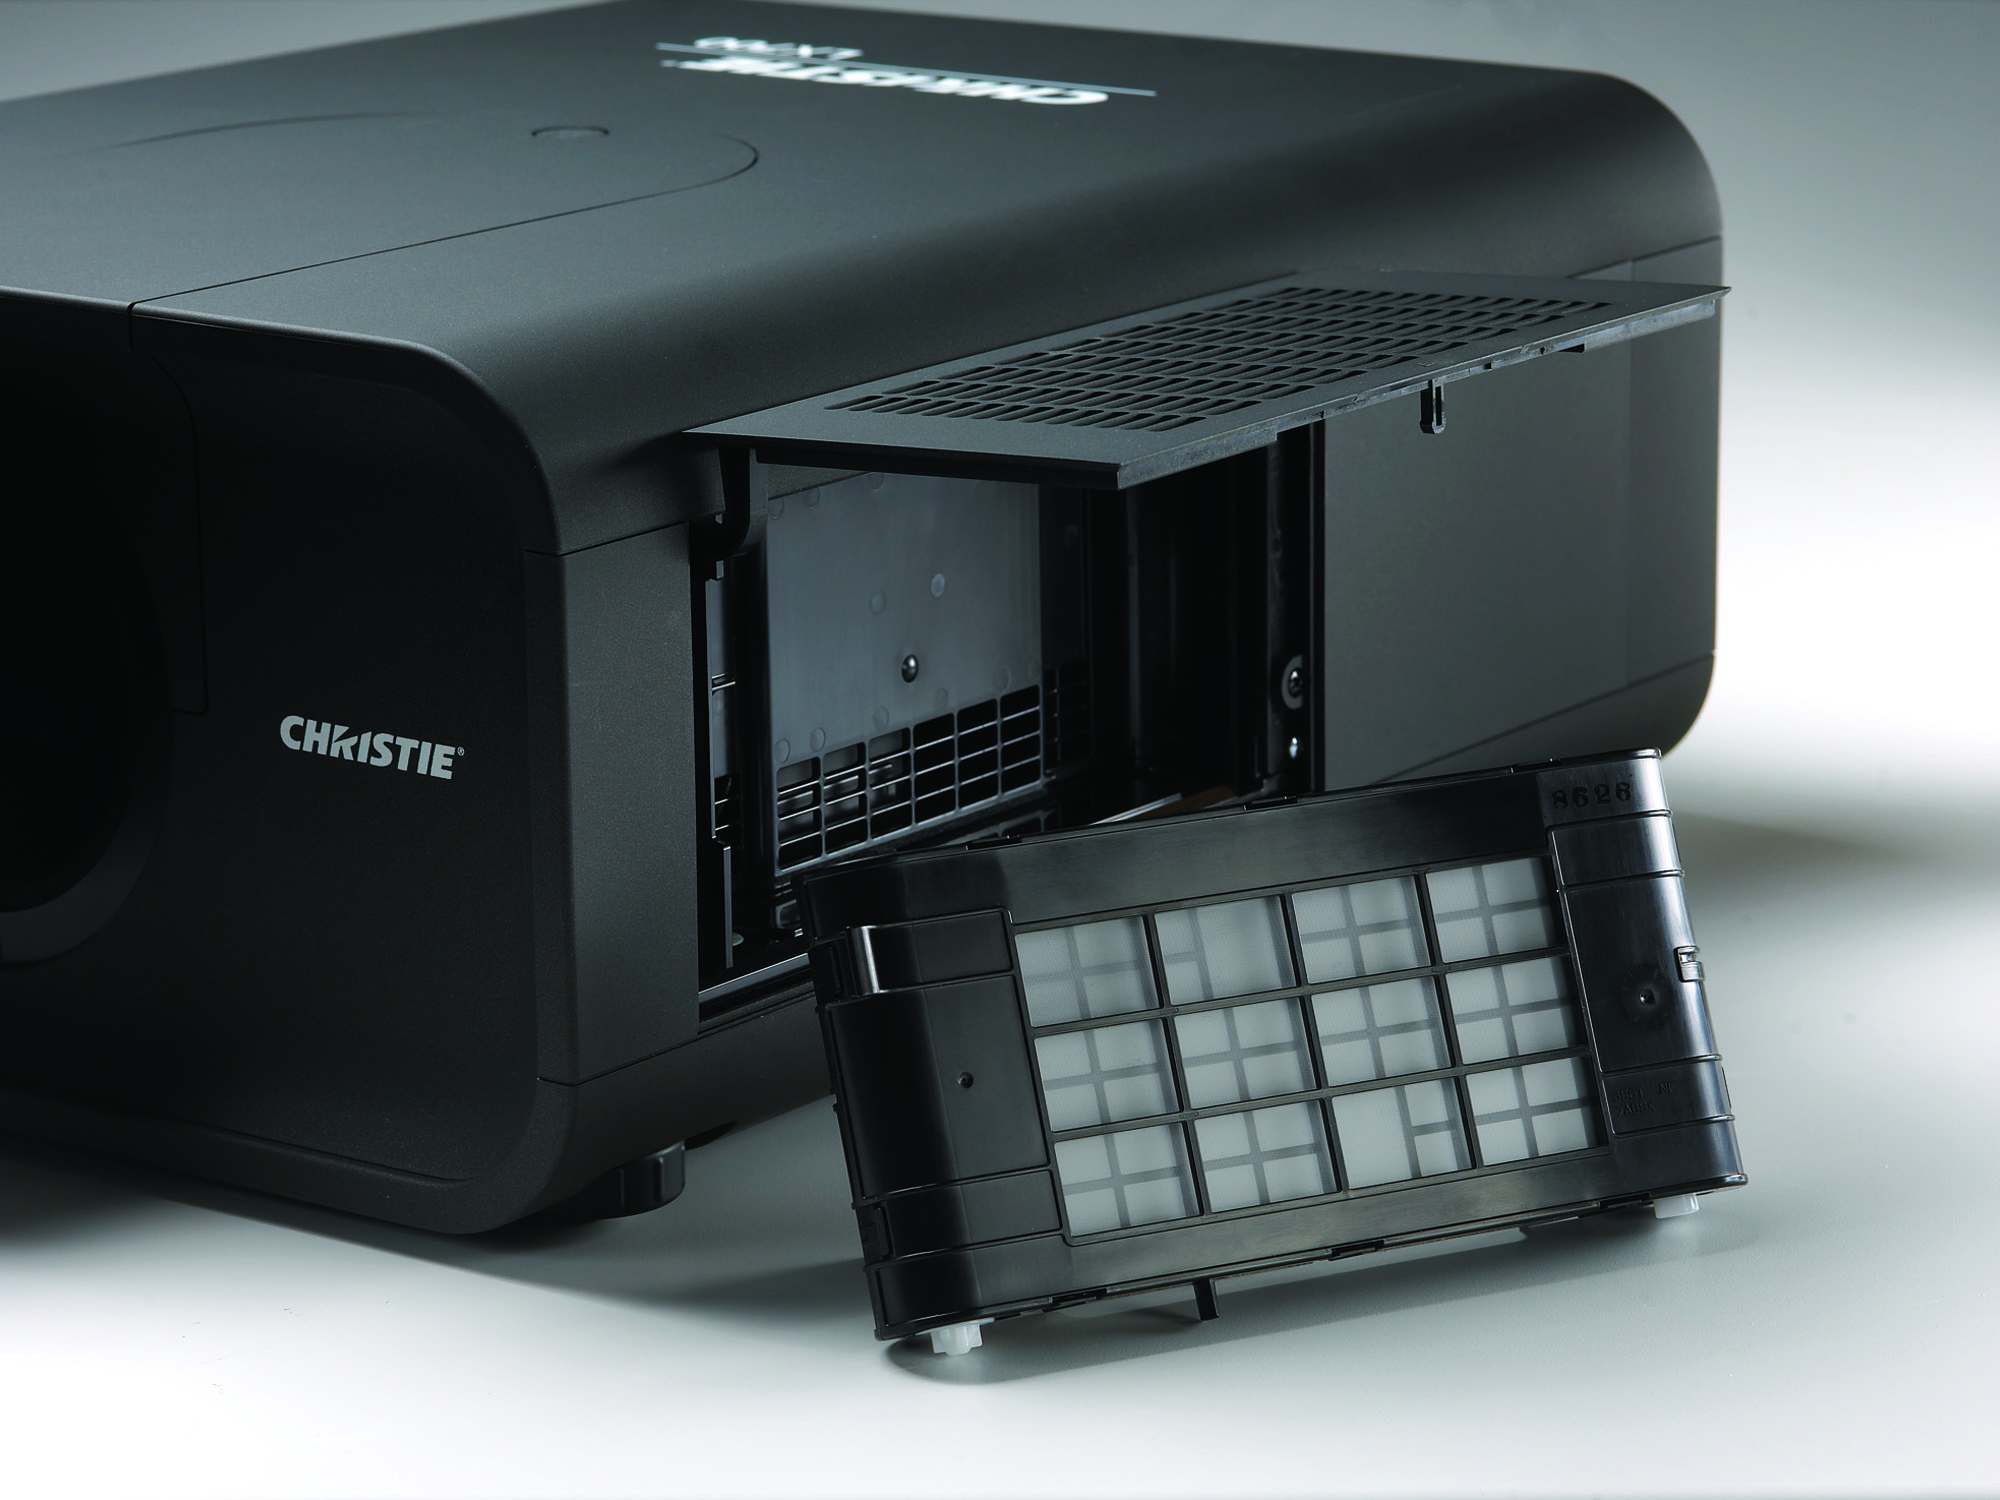 /globalassets/.catalog/products/images/christie-lx700/gallery/christie-lx700-lcd-digital-projector-lx700_129.jpg